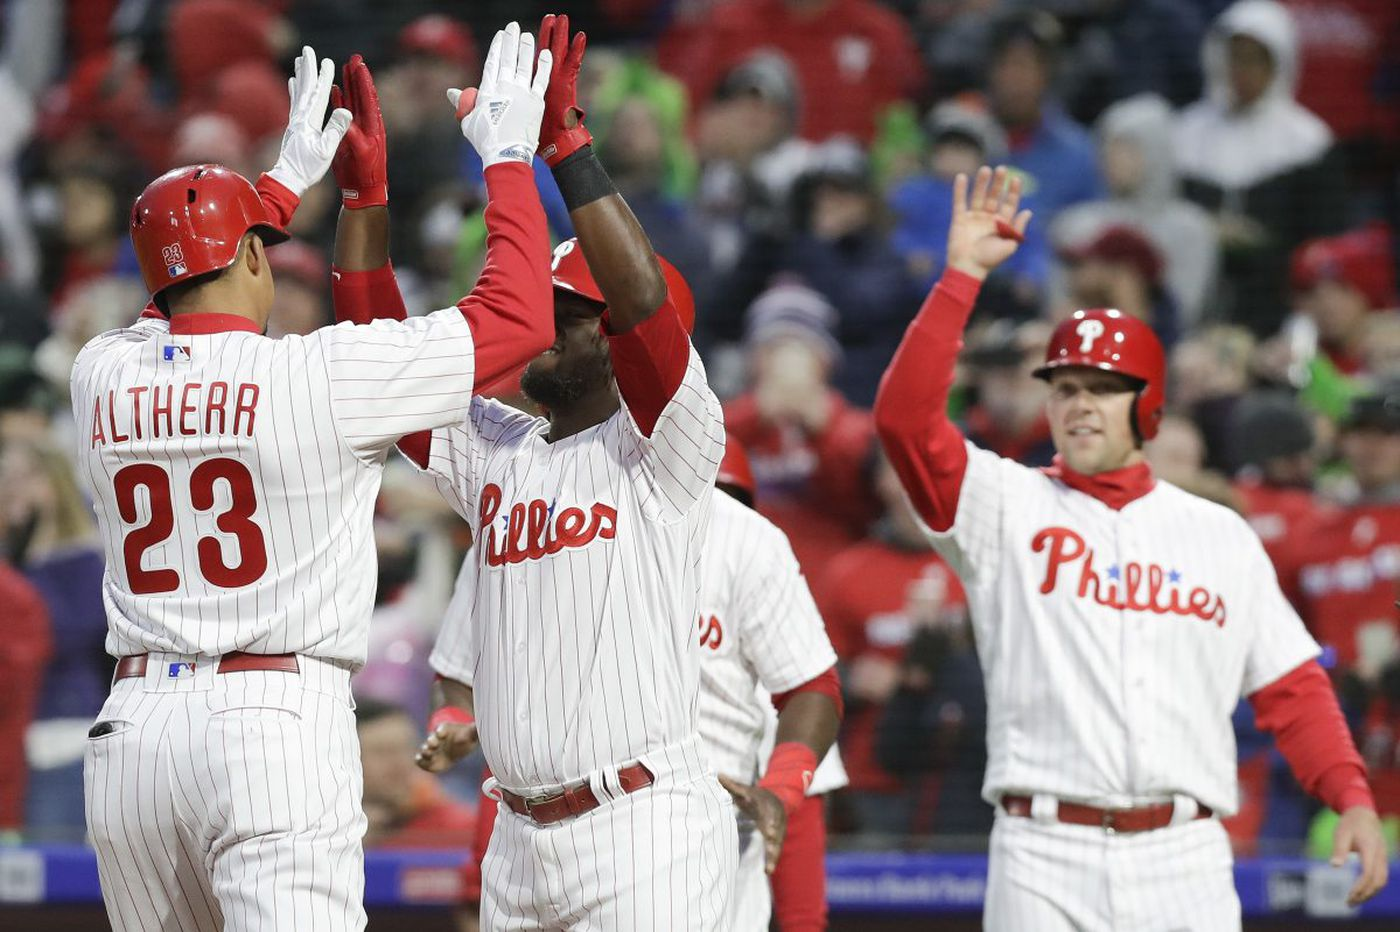 Phillies hit two grand slams, Maikel Franco stays hot to thump Marlins